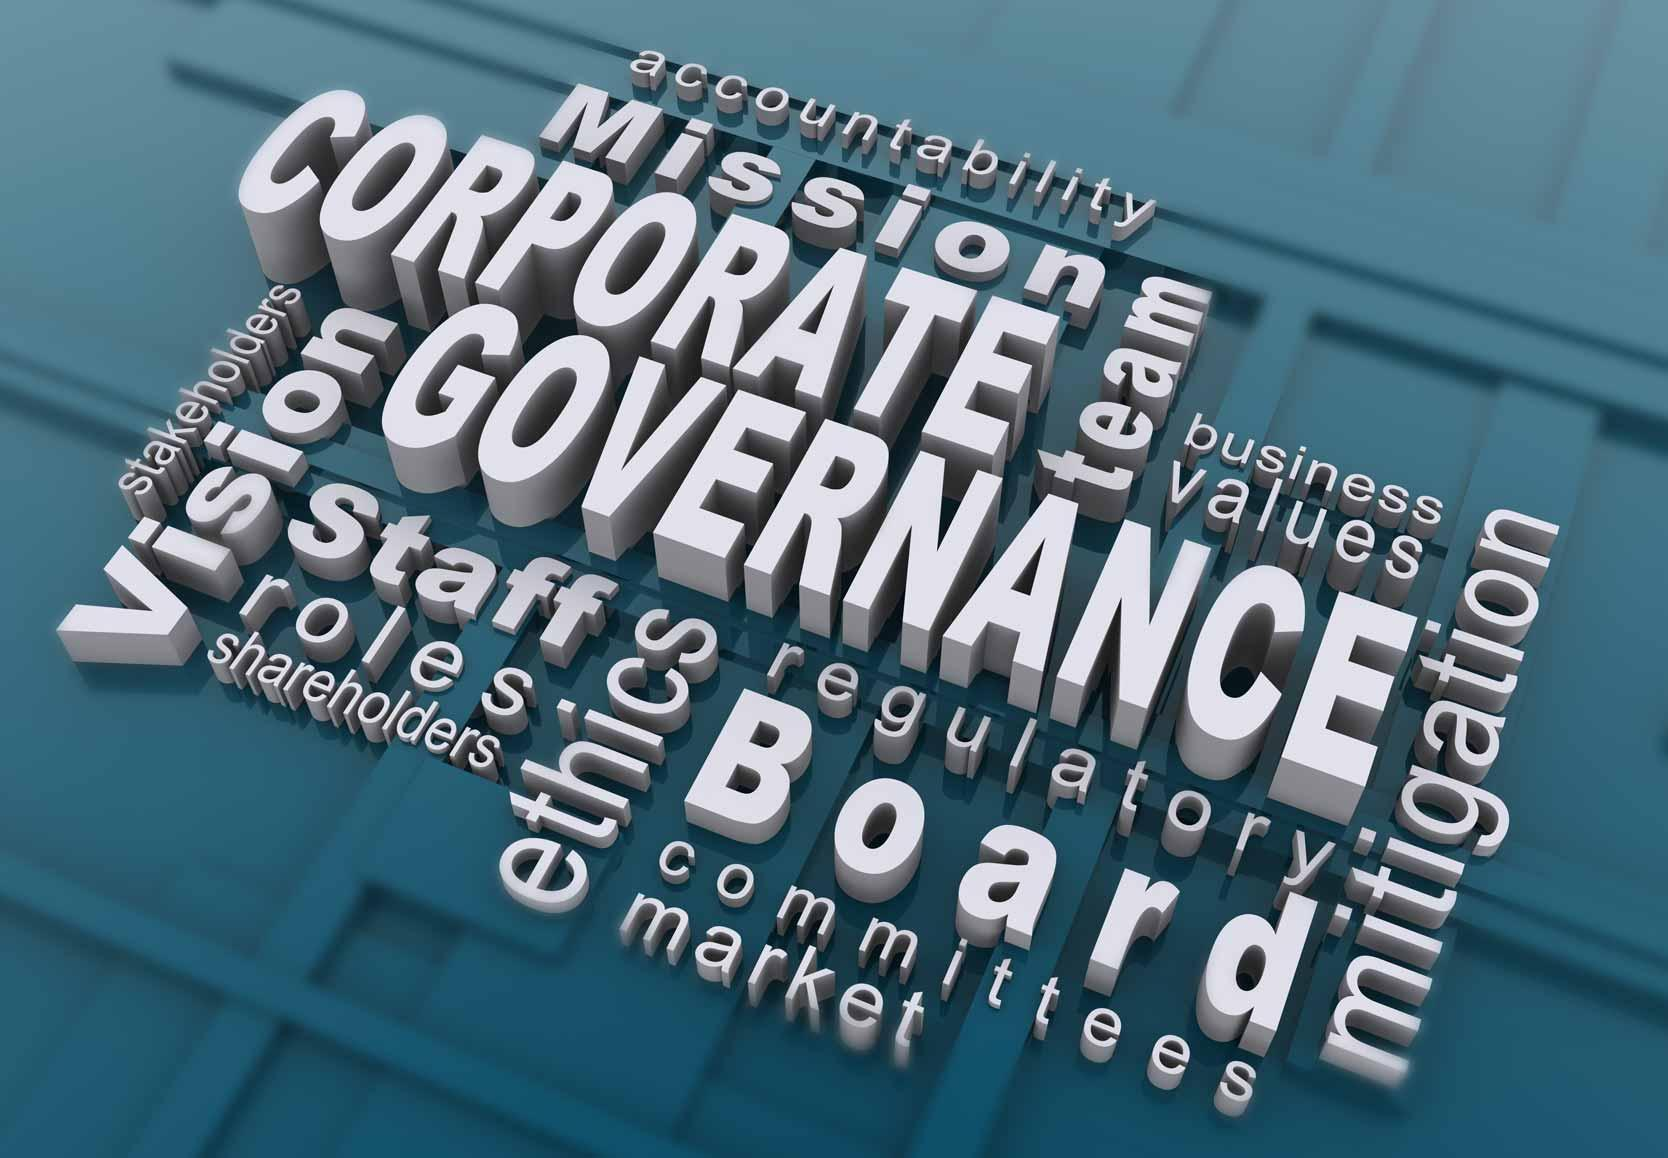 Tighter corporate governance structures key to success of Islamic Finance